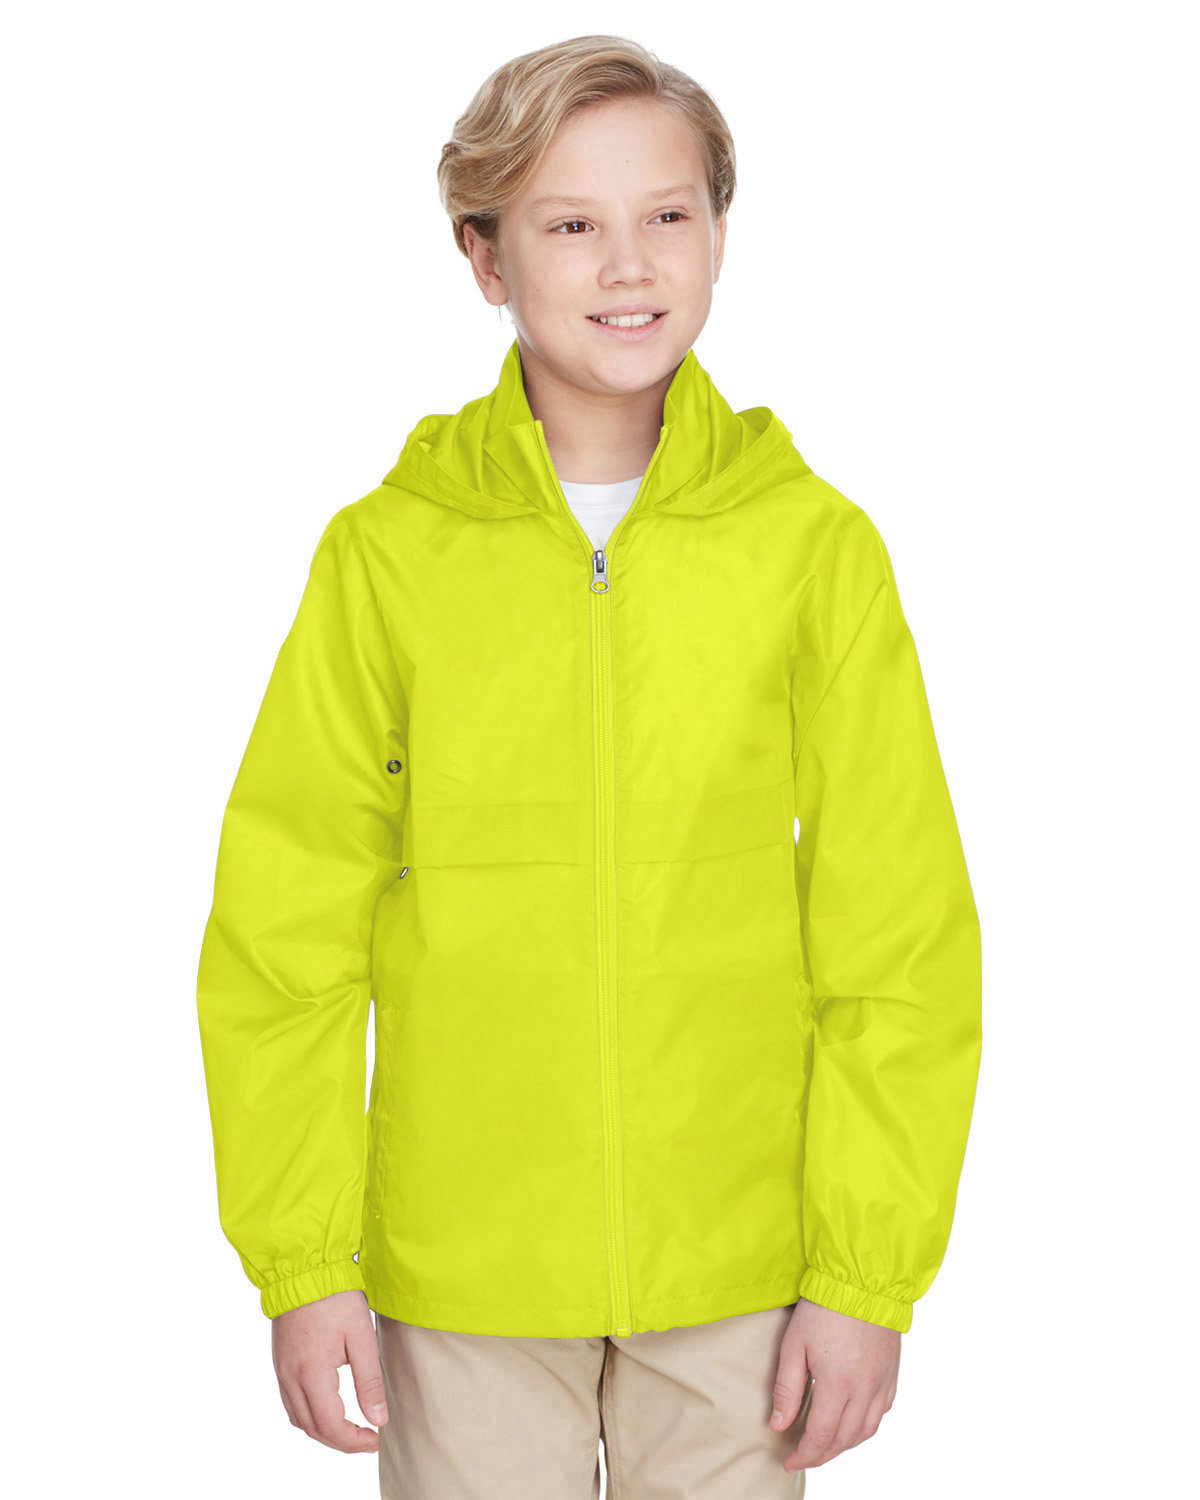 Team 365 Youth Zone Protect Lightweight Jacket SAFETY YELLOW